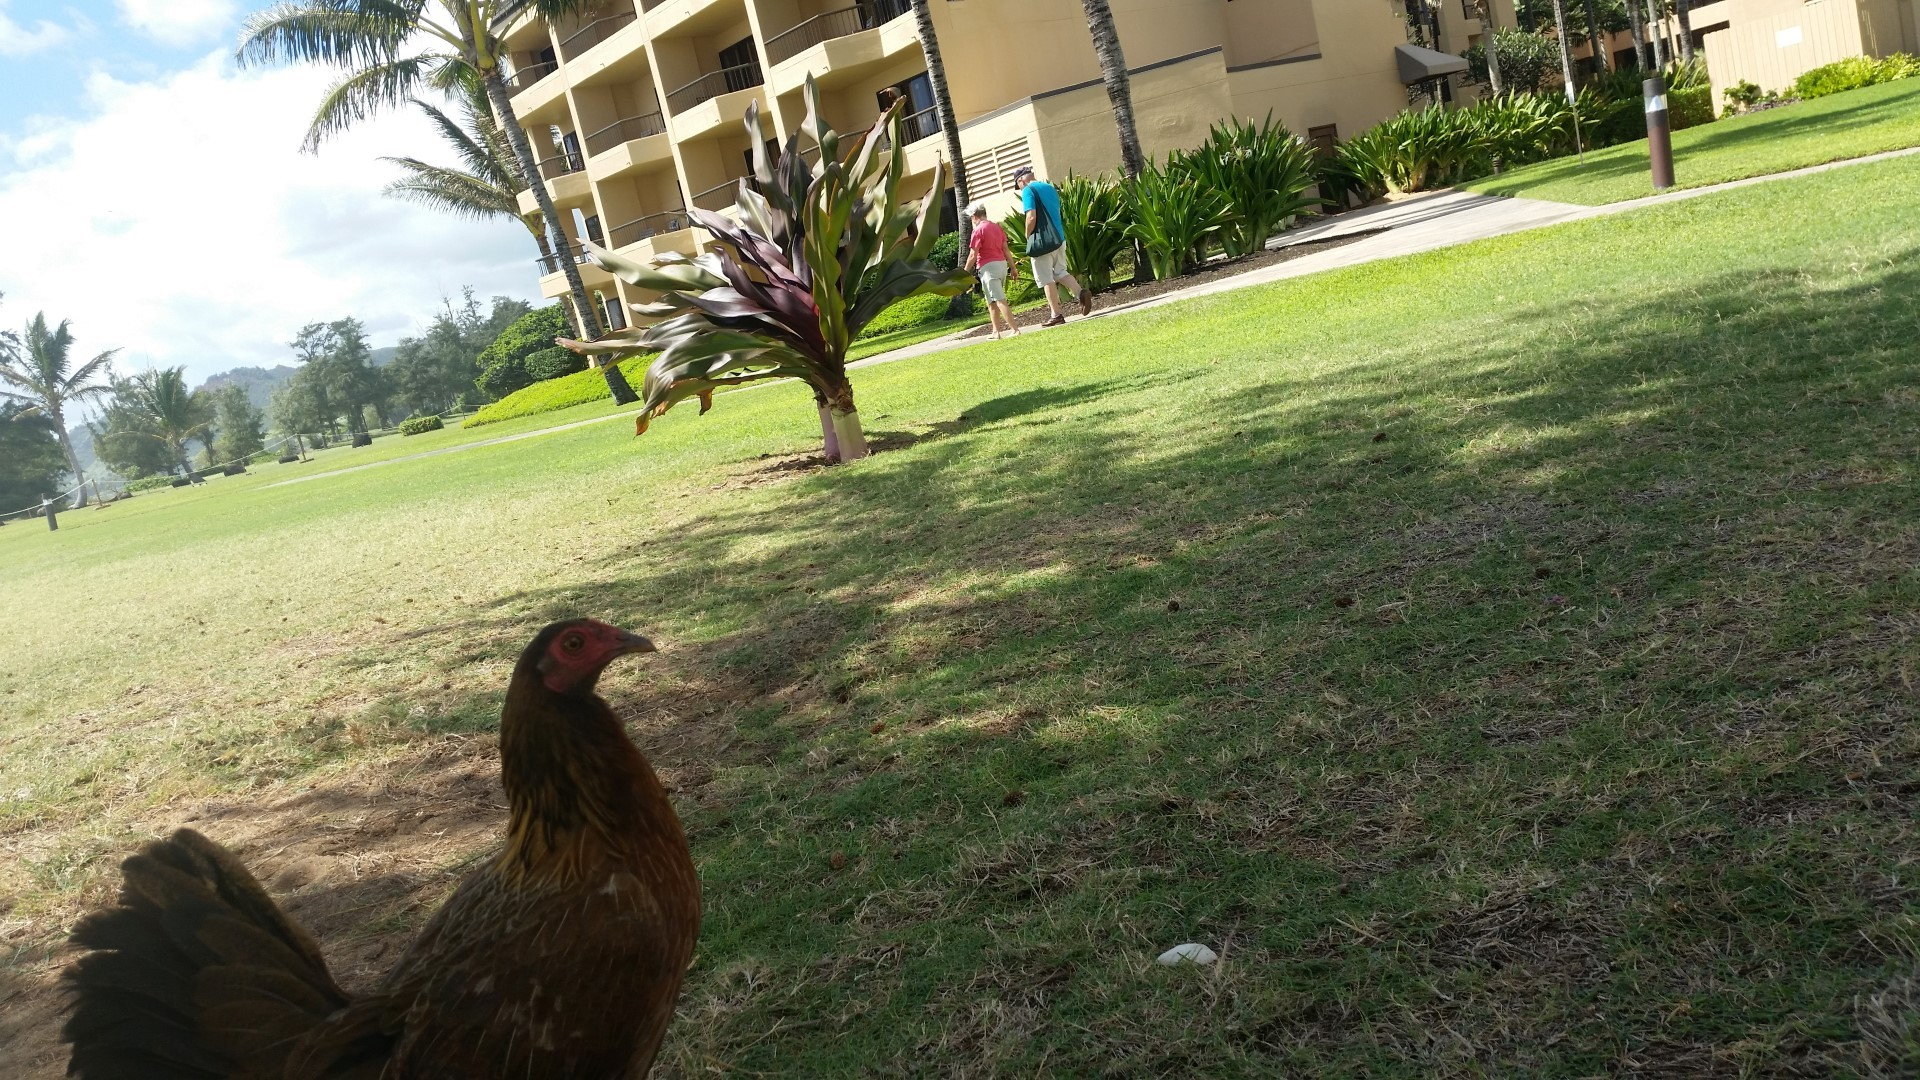 Hawaii Tag 27: Strandtag, Yoga (2014-10-22)